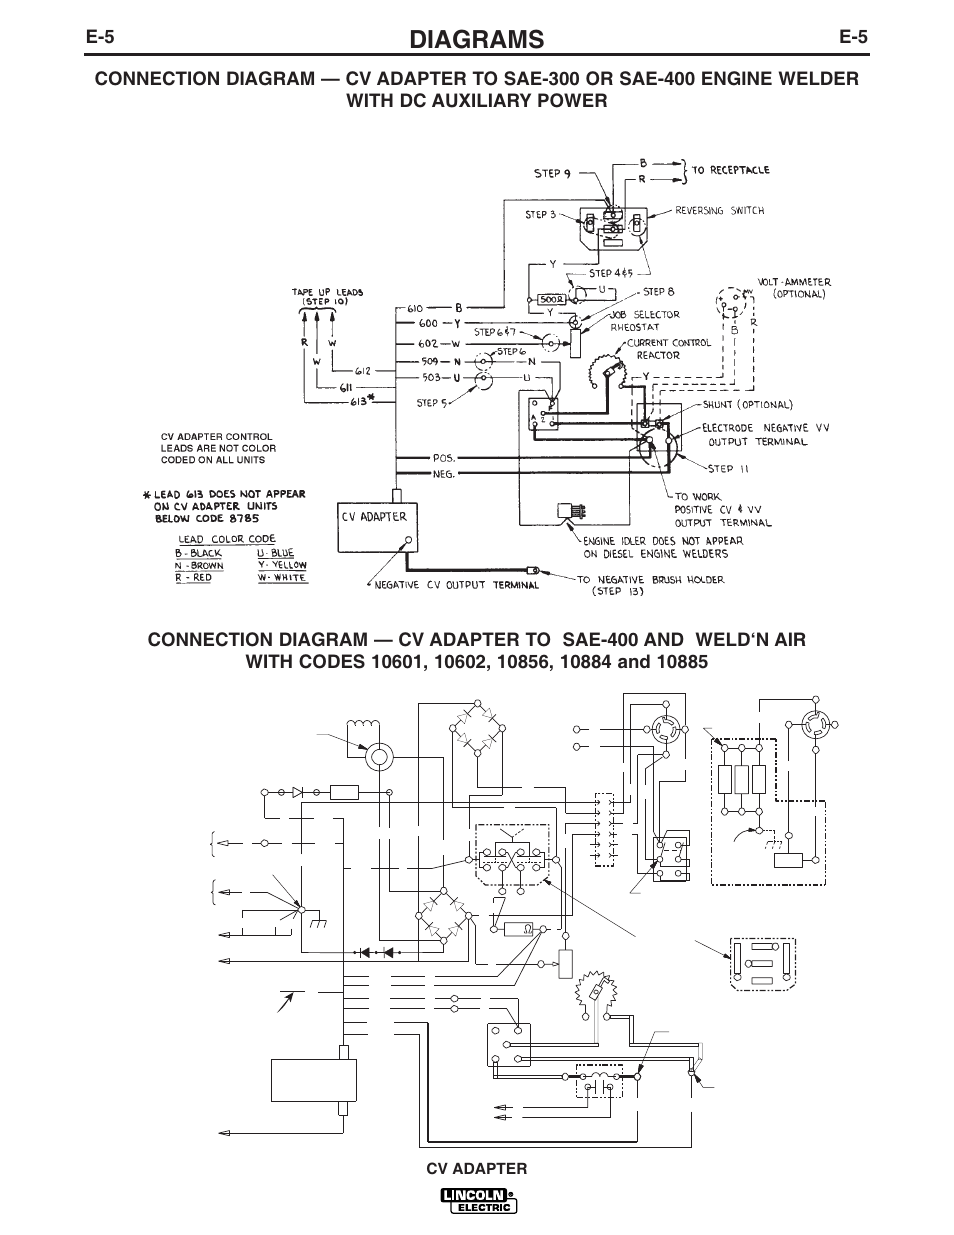 lincoln electric cv adapter im309 d page34 diagrams, cv adapter lincoln electric cv adapter im309 d user lincoln welder sae 300 wiring diagram at bayanpartner.co